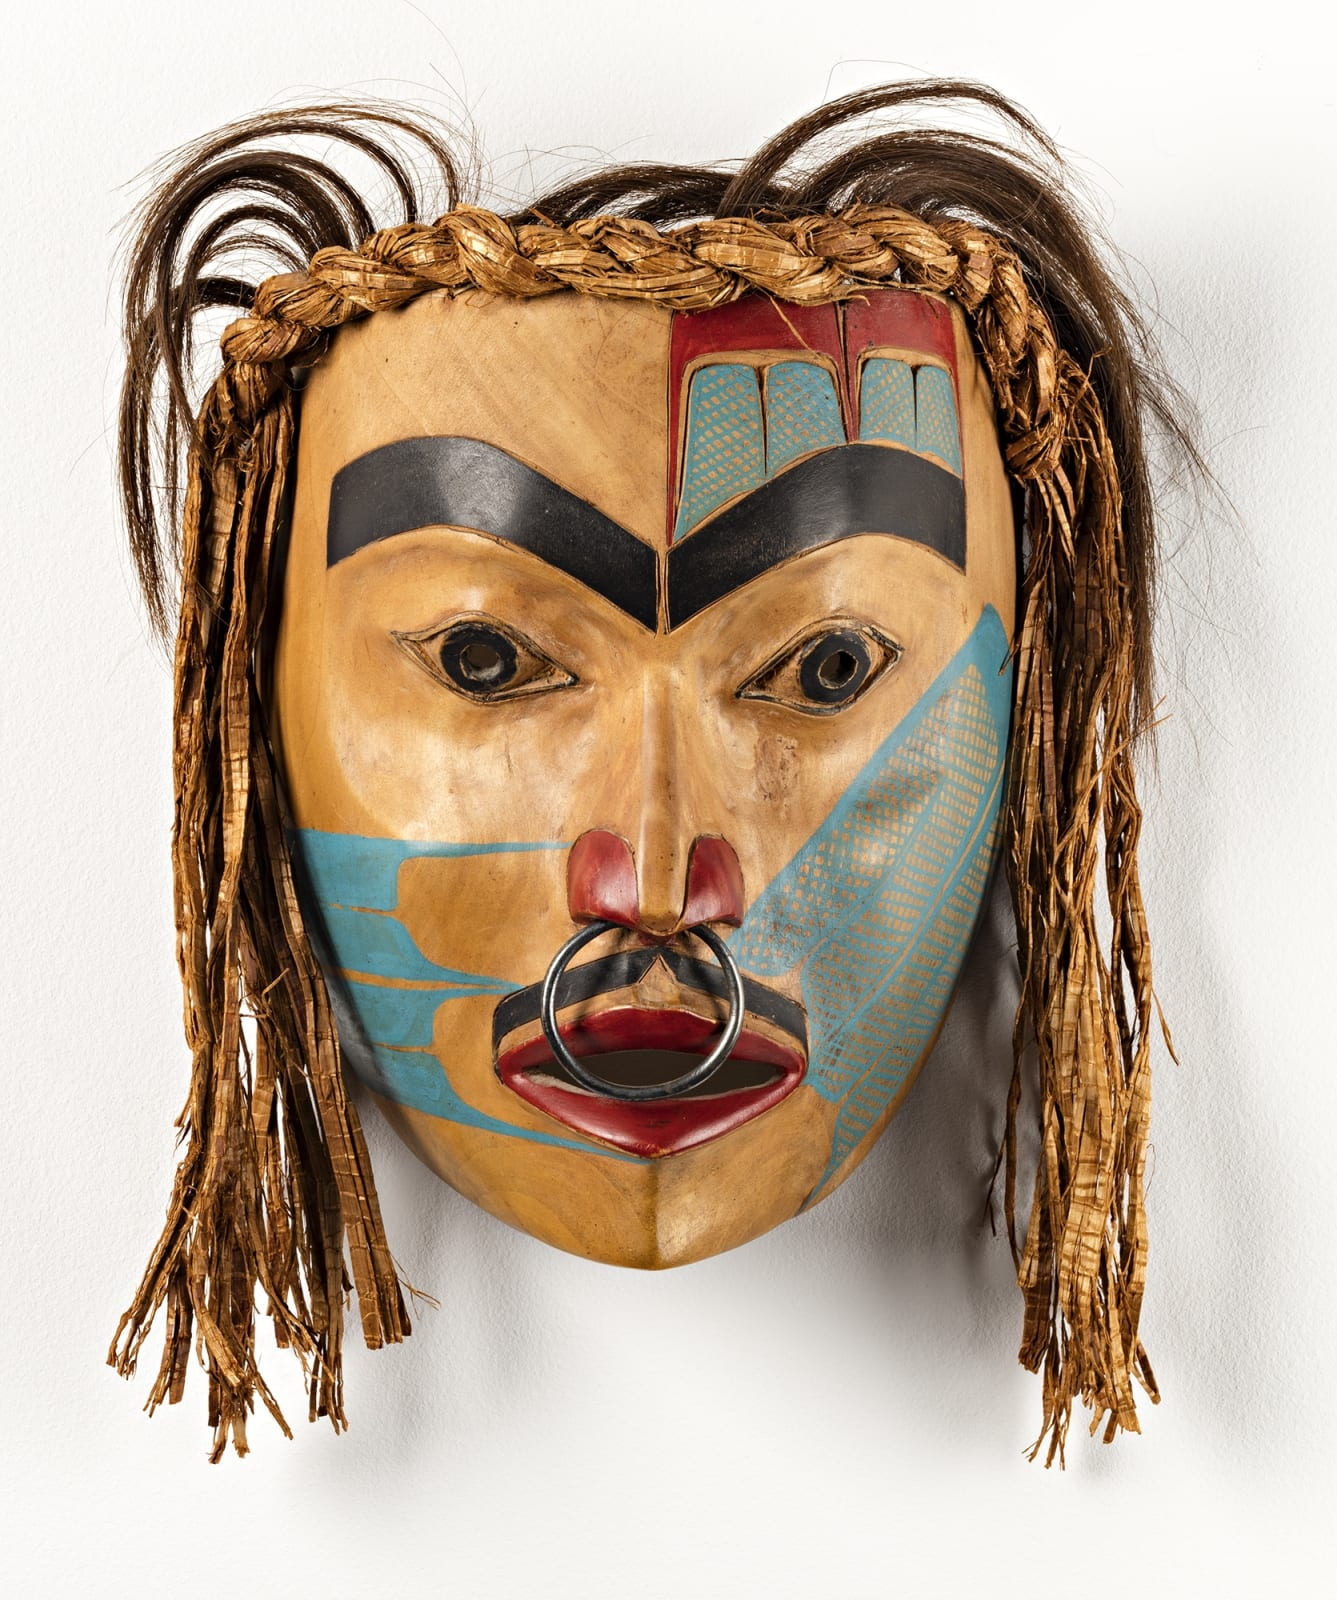 Lot 69 FREDA DIESING (1925-2002), HAIDA, PRINCE RUPERT Portrait Mask, 1971 alder, cedar bark, hair, metal, and paint, 8 x 6 x 4.5 in (20.3 x 15.2 x 11.4 cm) excluding hair Estimate: $5,000⁠ ⁠— $7,000